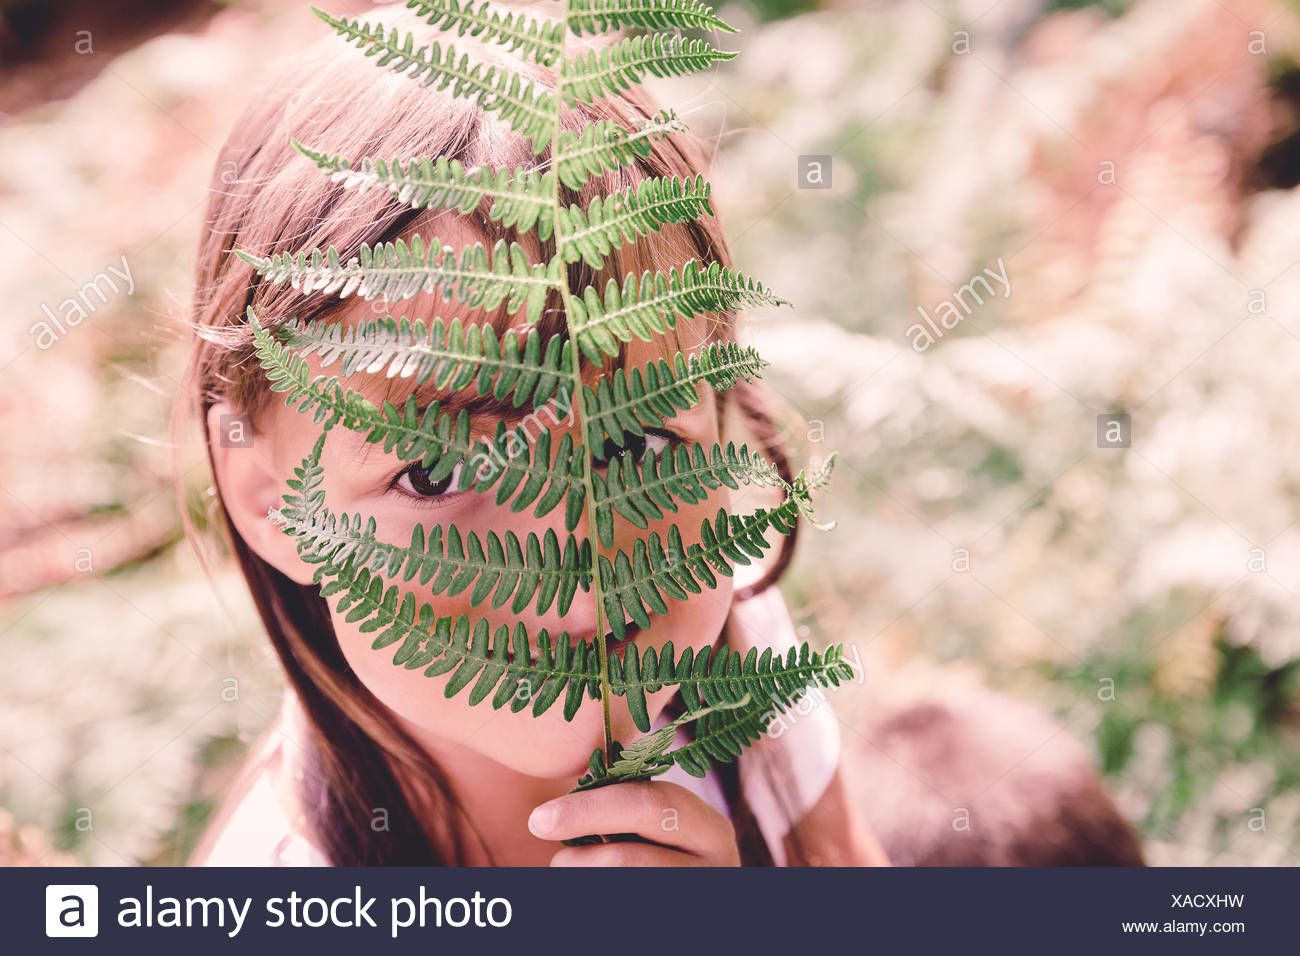 Girl hiding her face behind a fern frond - Stock Image